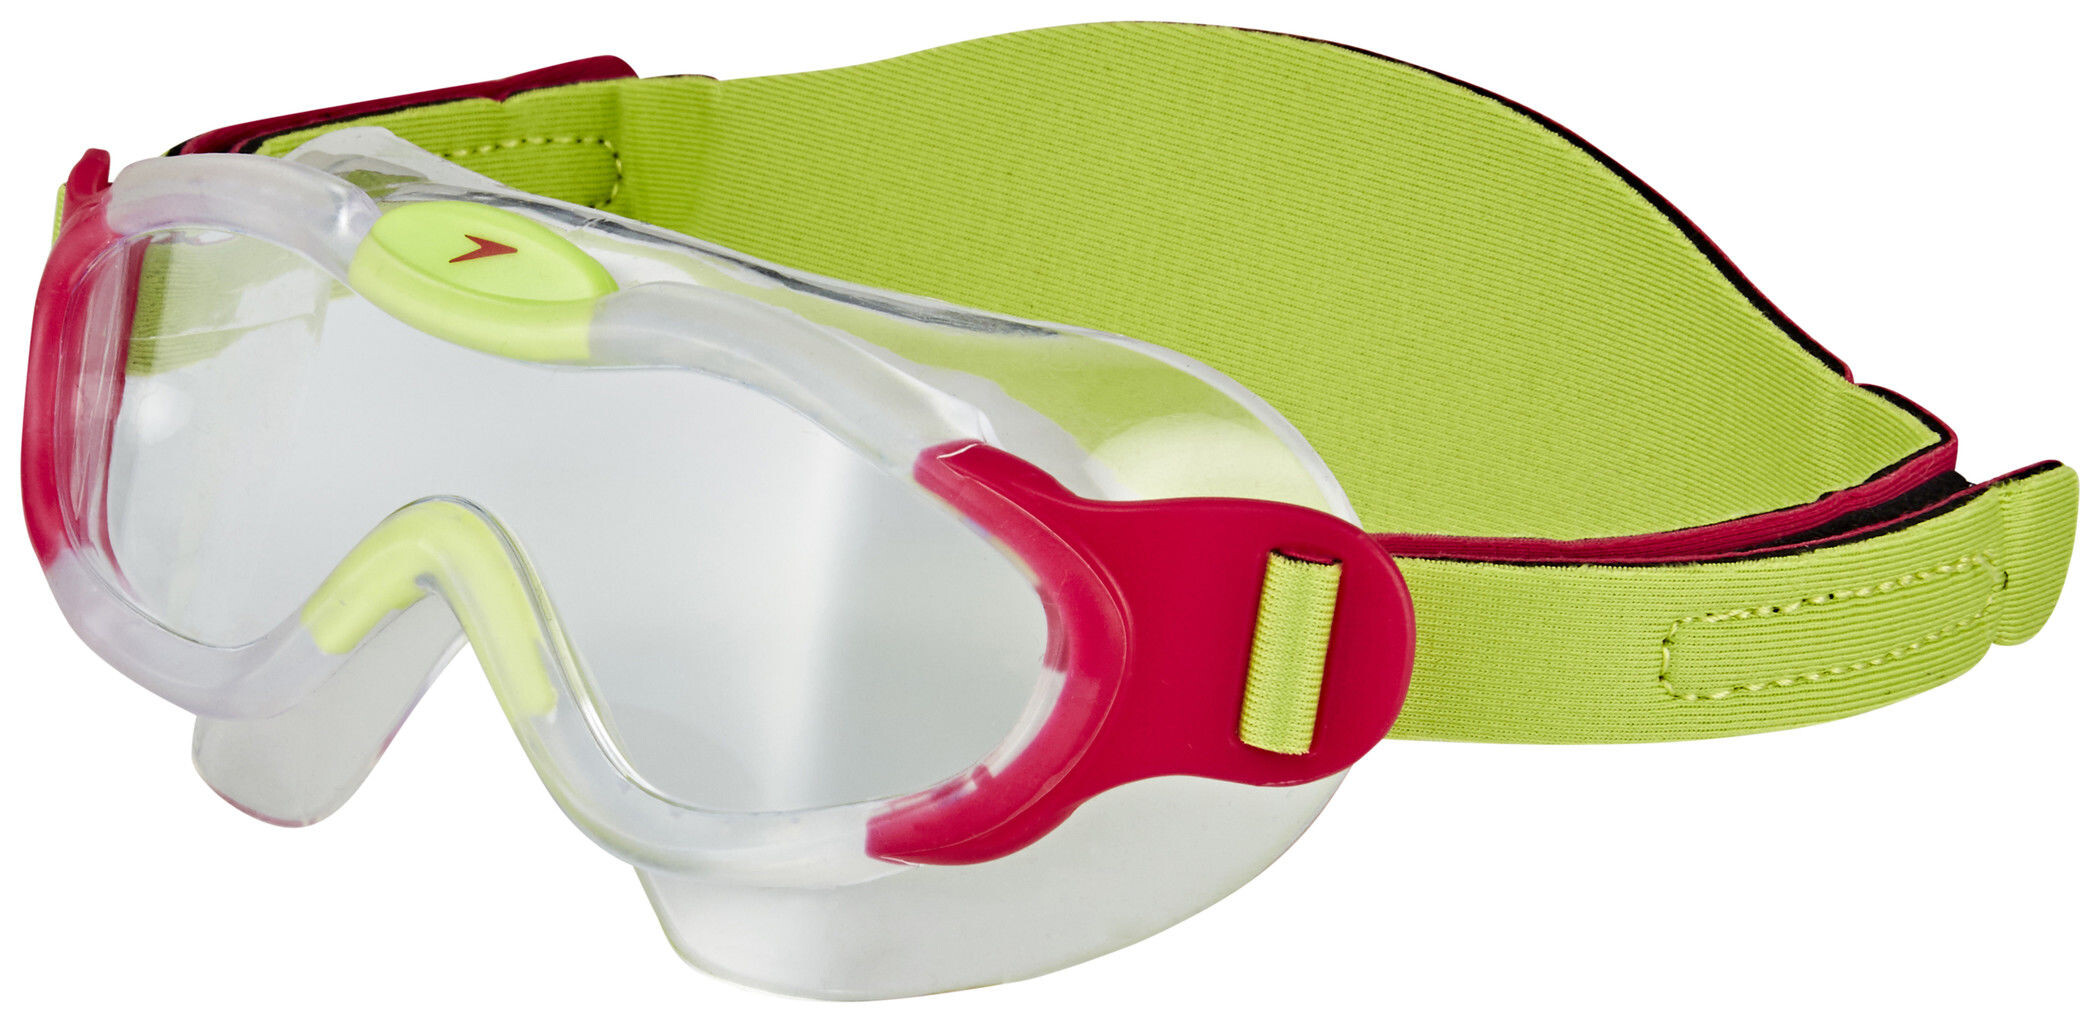 speedo Biofuse Sea Squad Svømmebriller Børn, passion pink/hydro green (2019) | swim_clothes